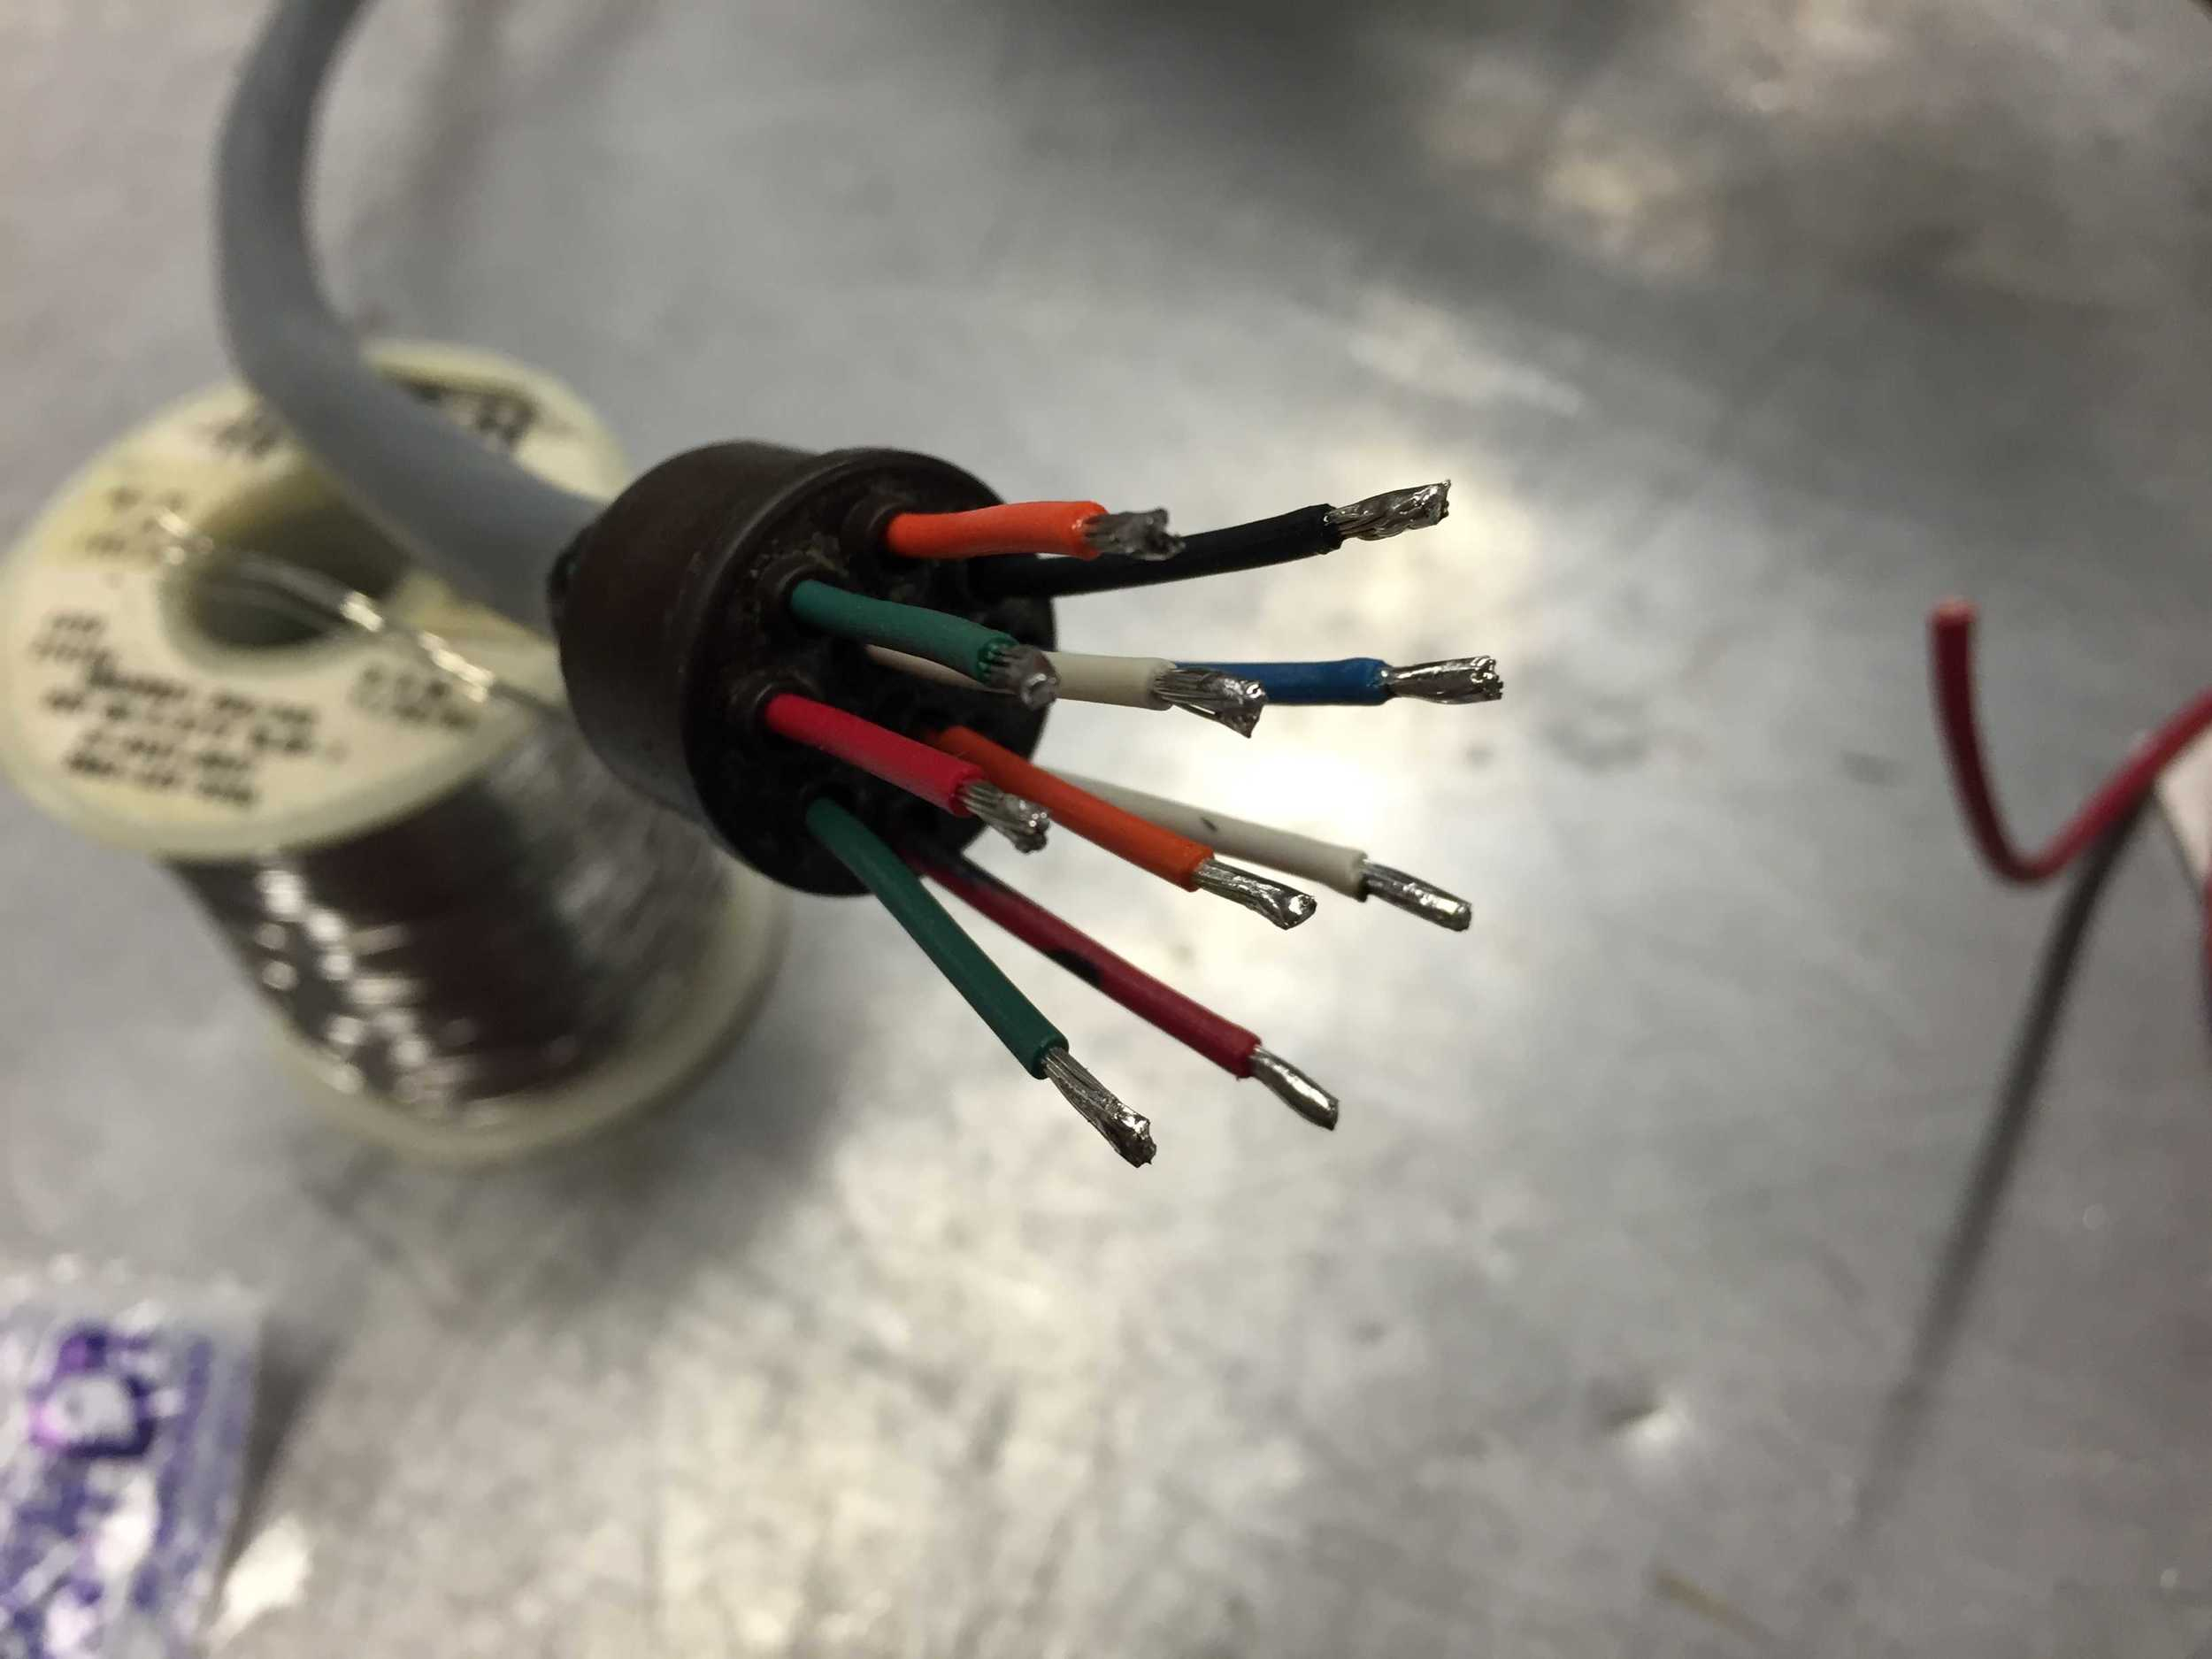 Encoder cable.